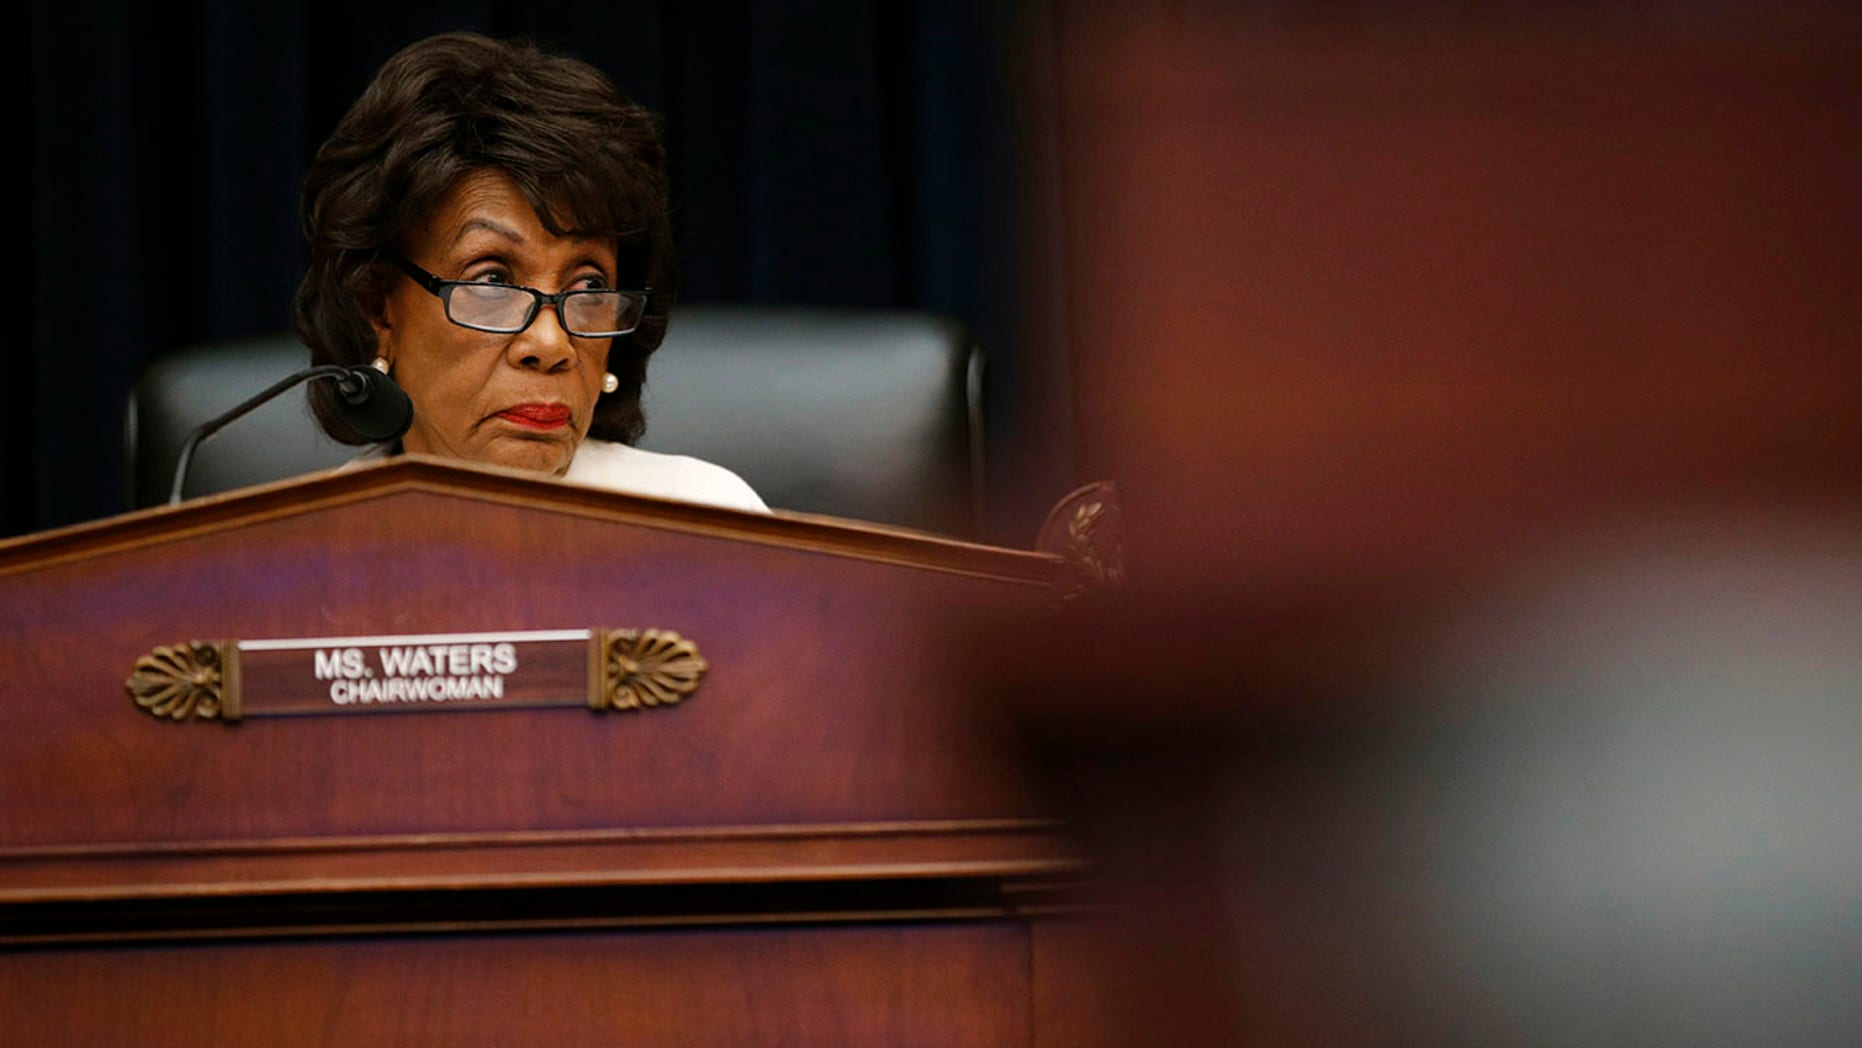 House Financial Services Committee chairwoman Maxine Waters, D-Calif., listens during a hearing with leaders of major banks, Wednesday, April 10, 2019, on Capitol Hill in Washington.